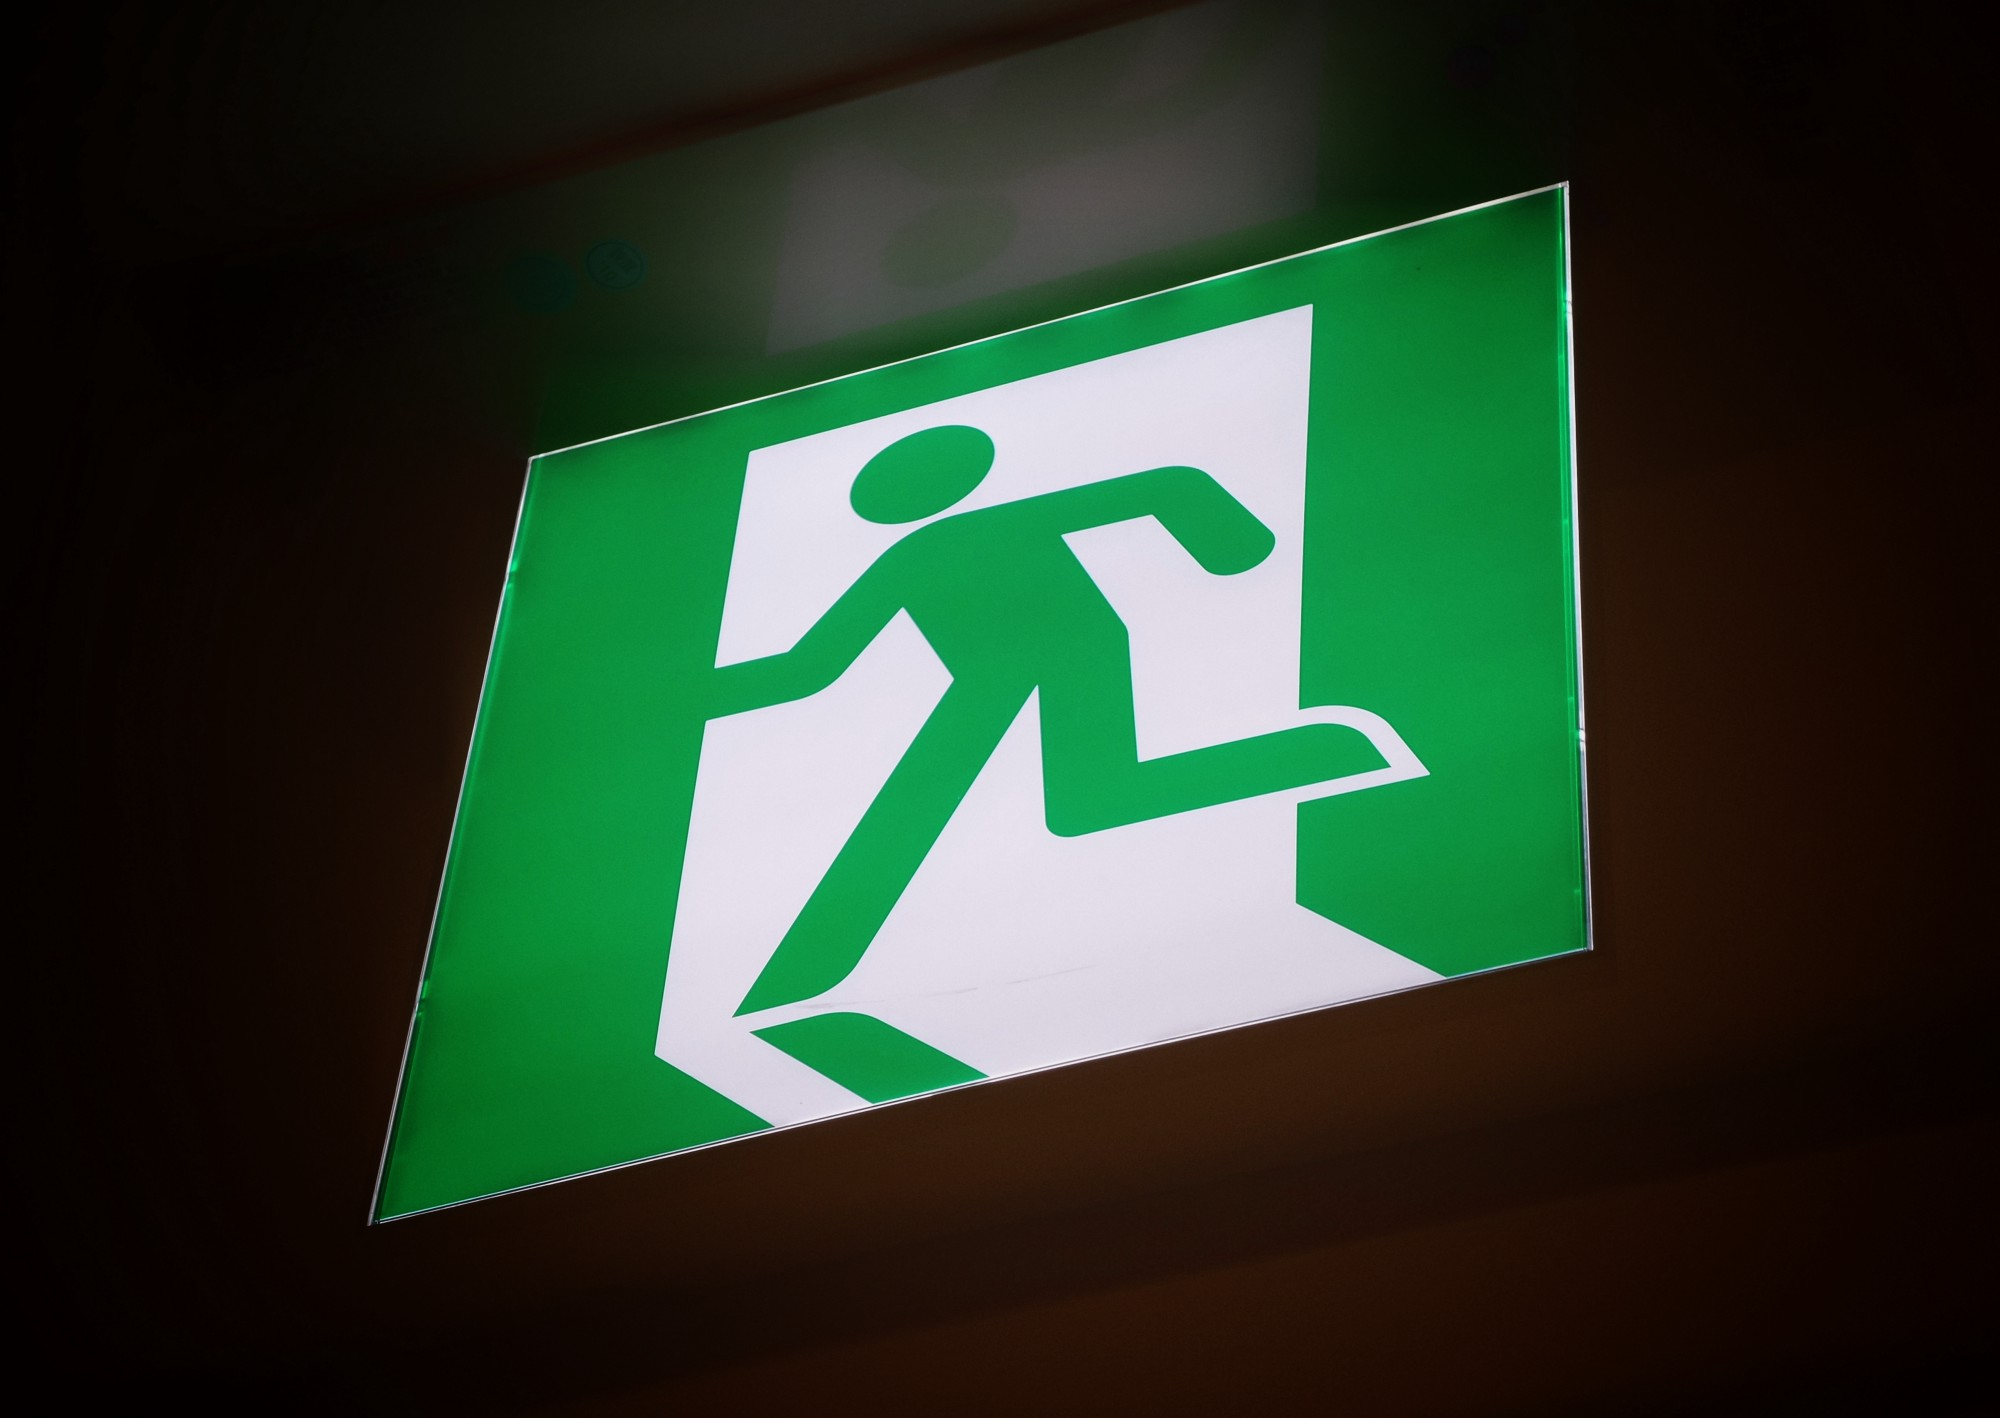 Exit sign with stick figure shown running out the door